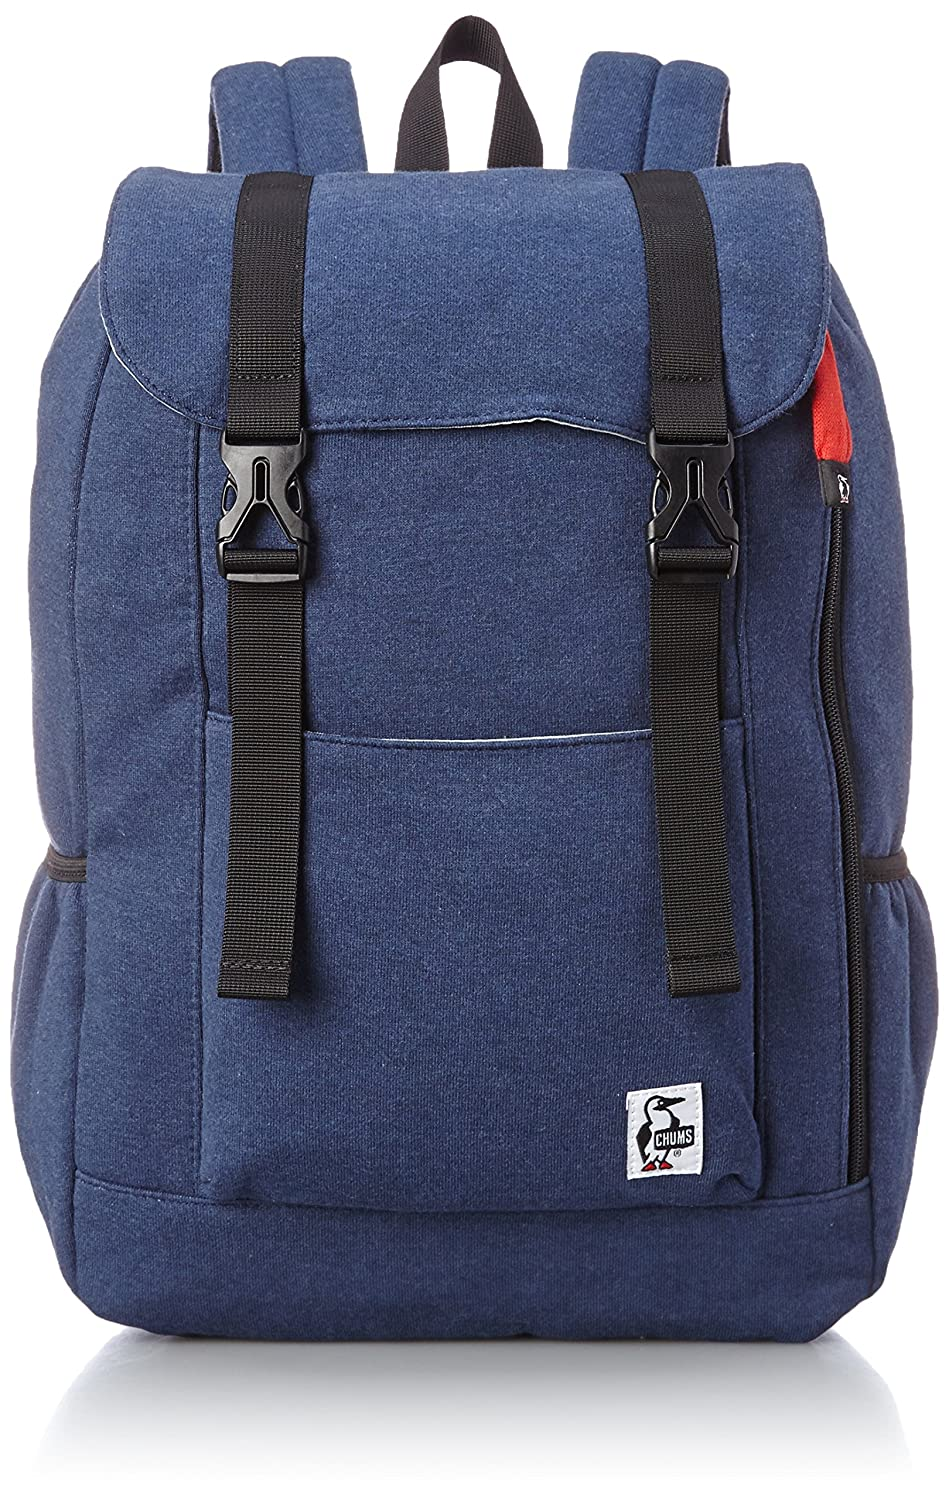 [チャムス] リュック Flap Day Pack Sweat CH60-2076-0118-00 B014K95SB2 H/Navy H/Navy